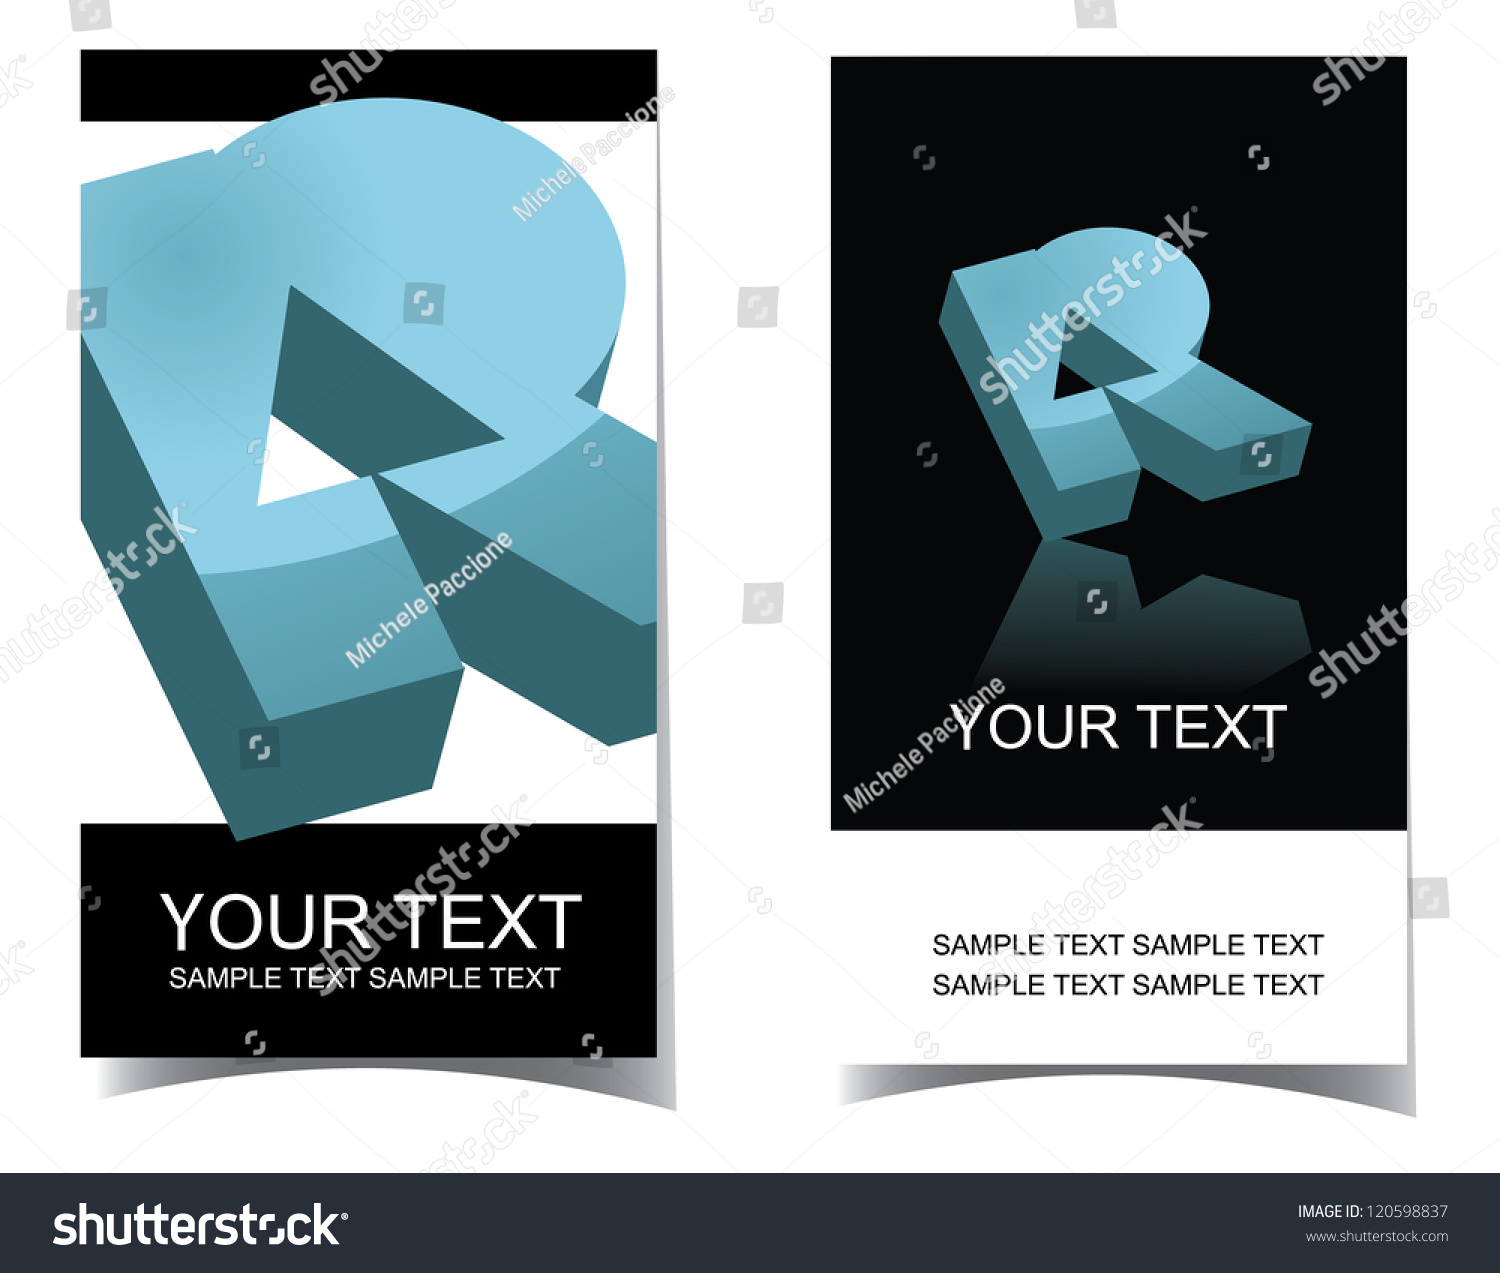 Vector Letter R Icon Symbol Business Stock Vector 120598837 ...